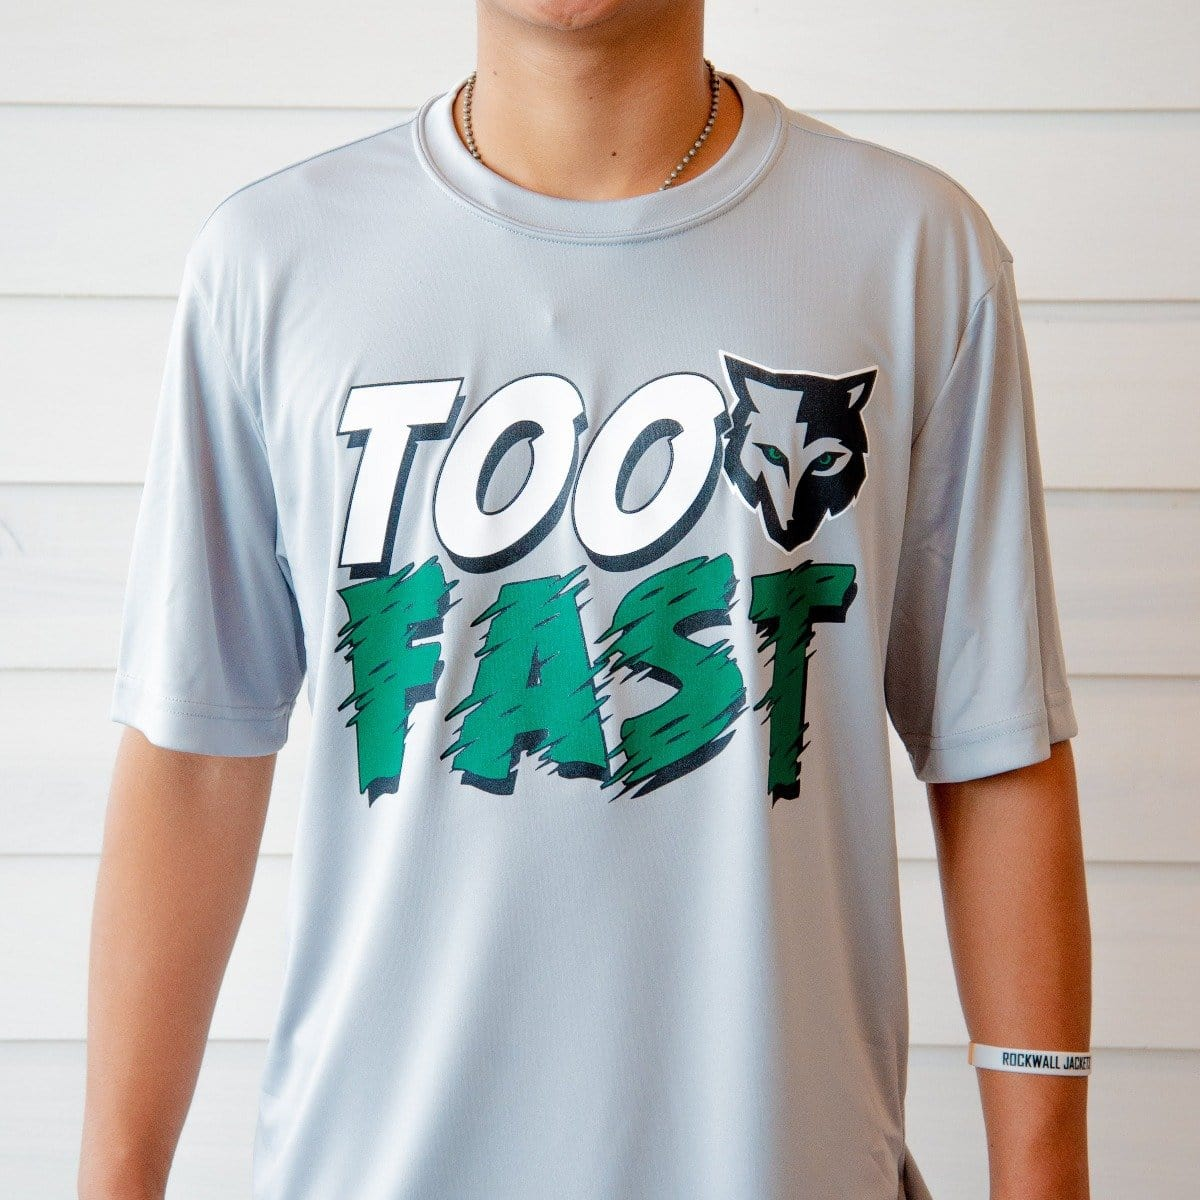 UTLEY TOO FAST DRI FIT MIDDLE SCHOOL SHIRT